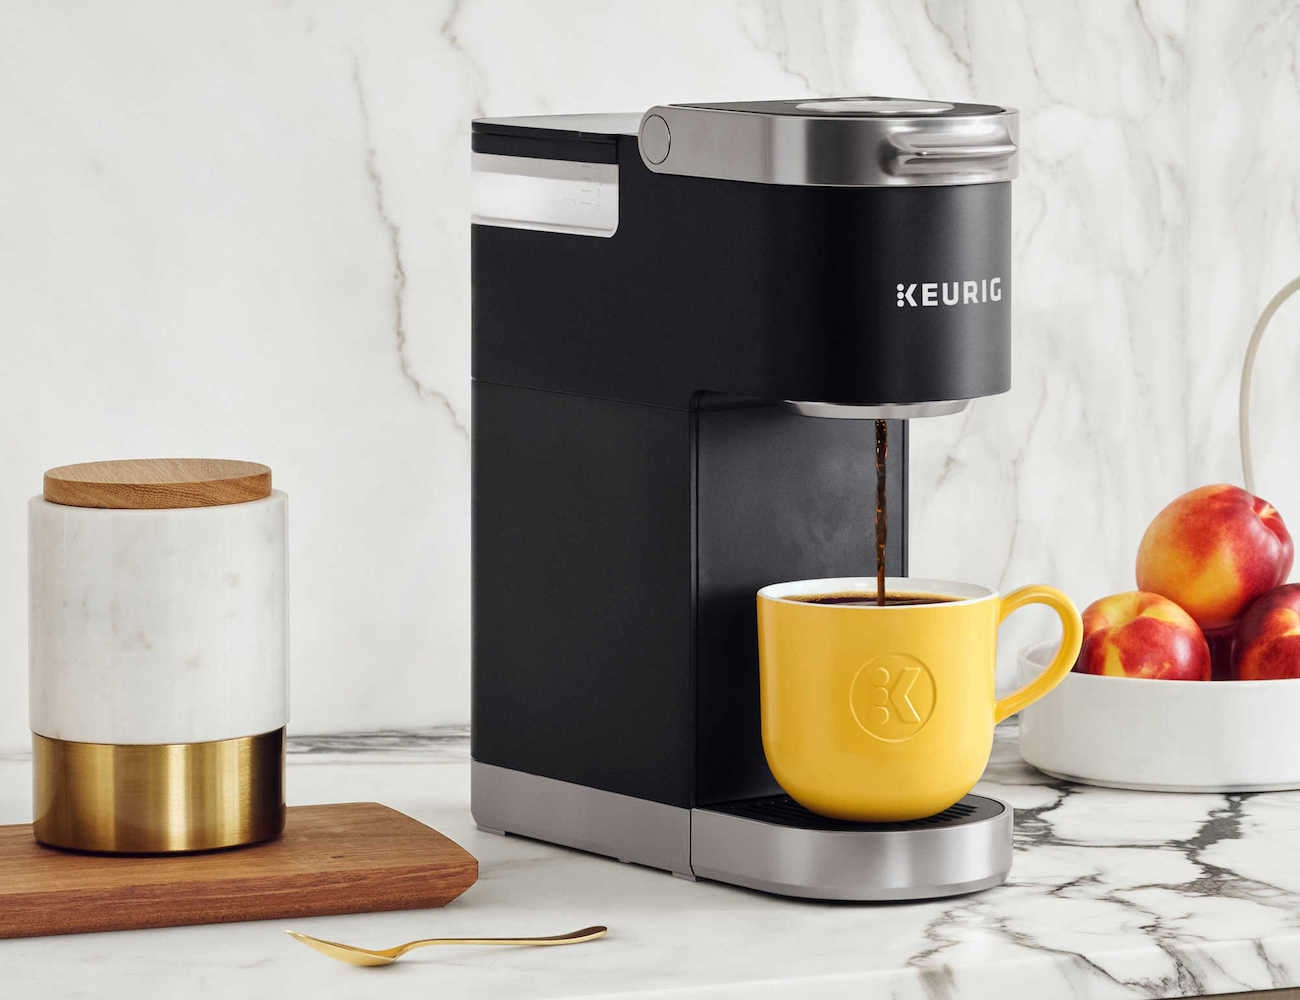 Keurig K-Mini Plus portable coffee maker lets you enjoy great coffee anywhere